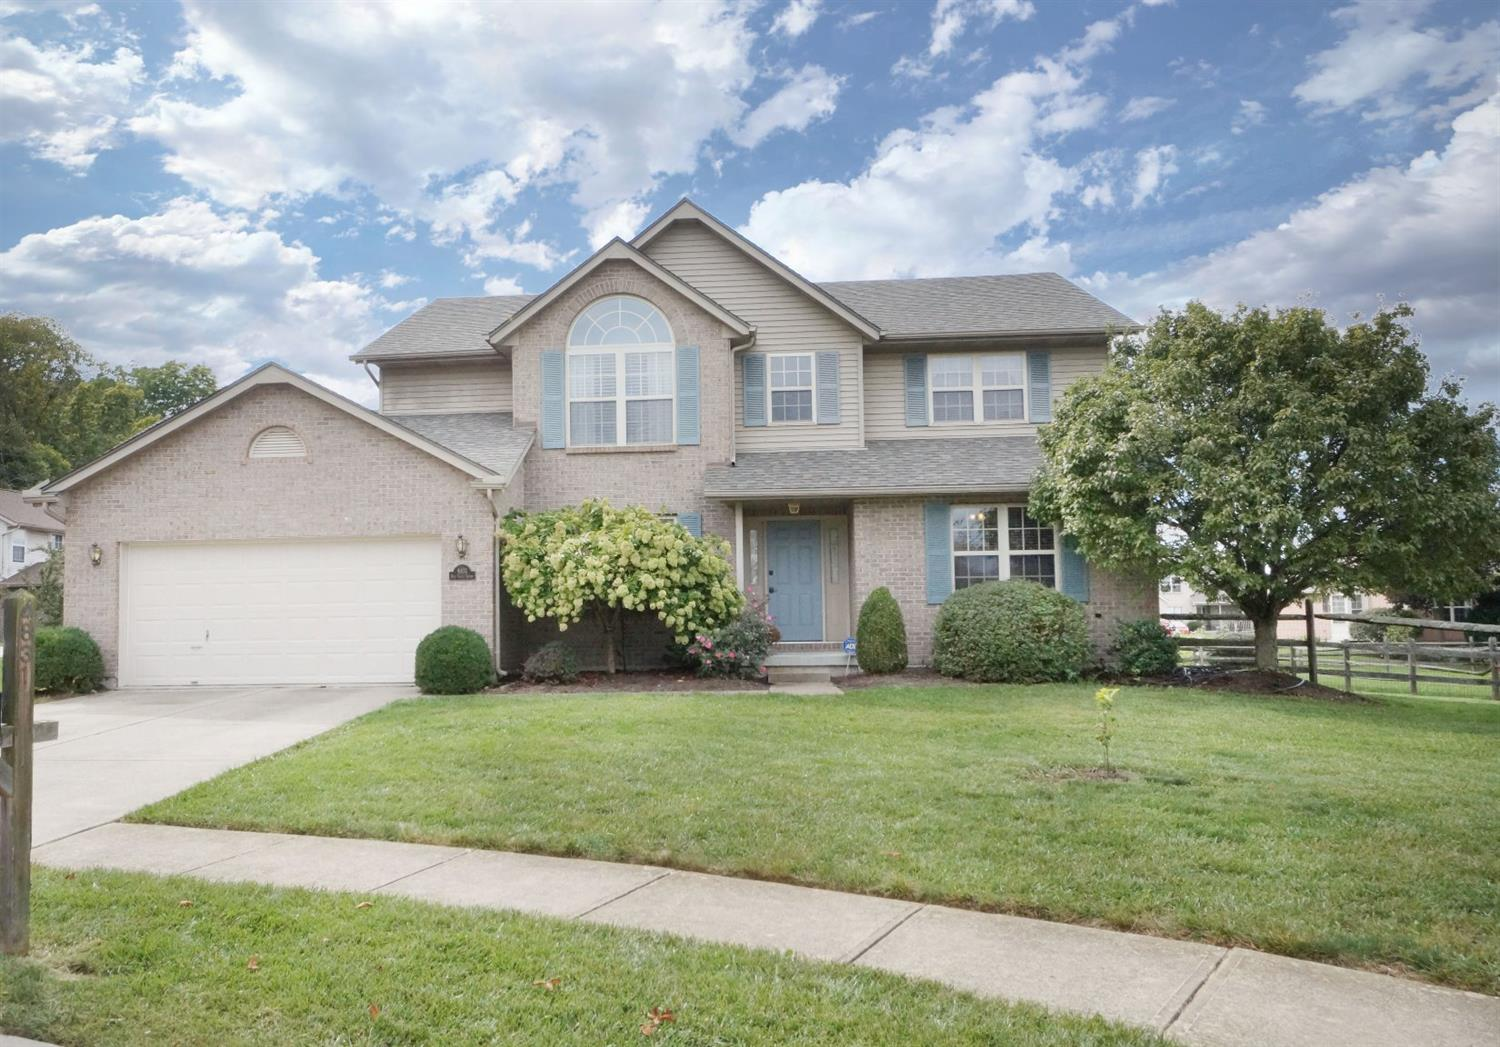 4831 Old Tower Ct Fairfield, OH